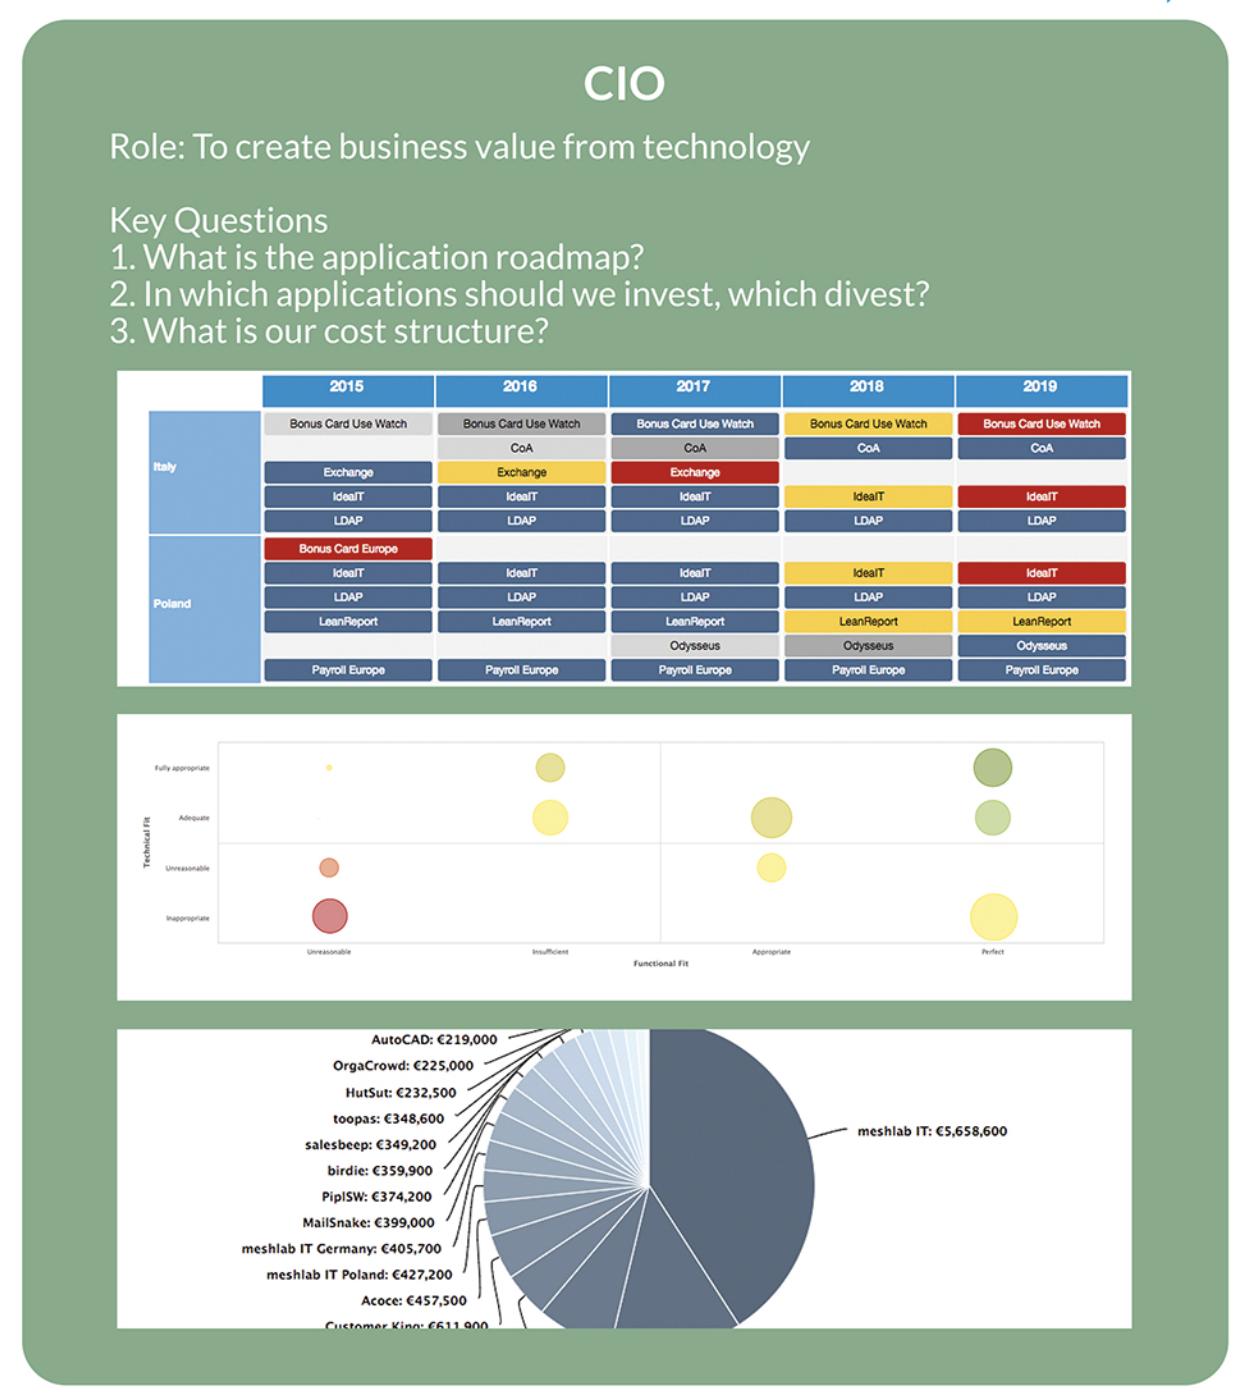 CIO stakeholder questions